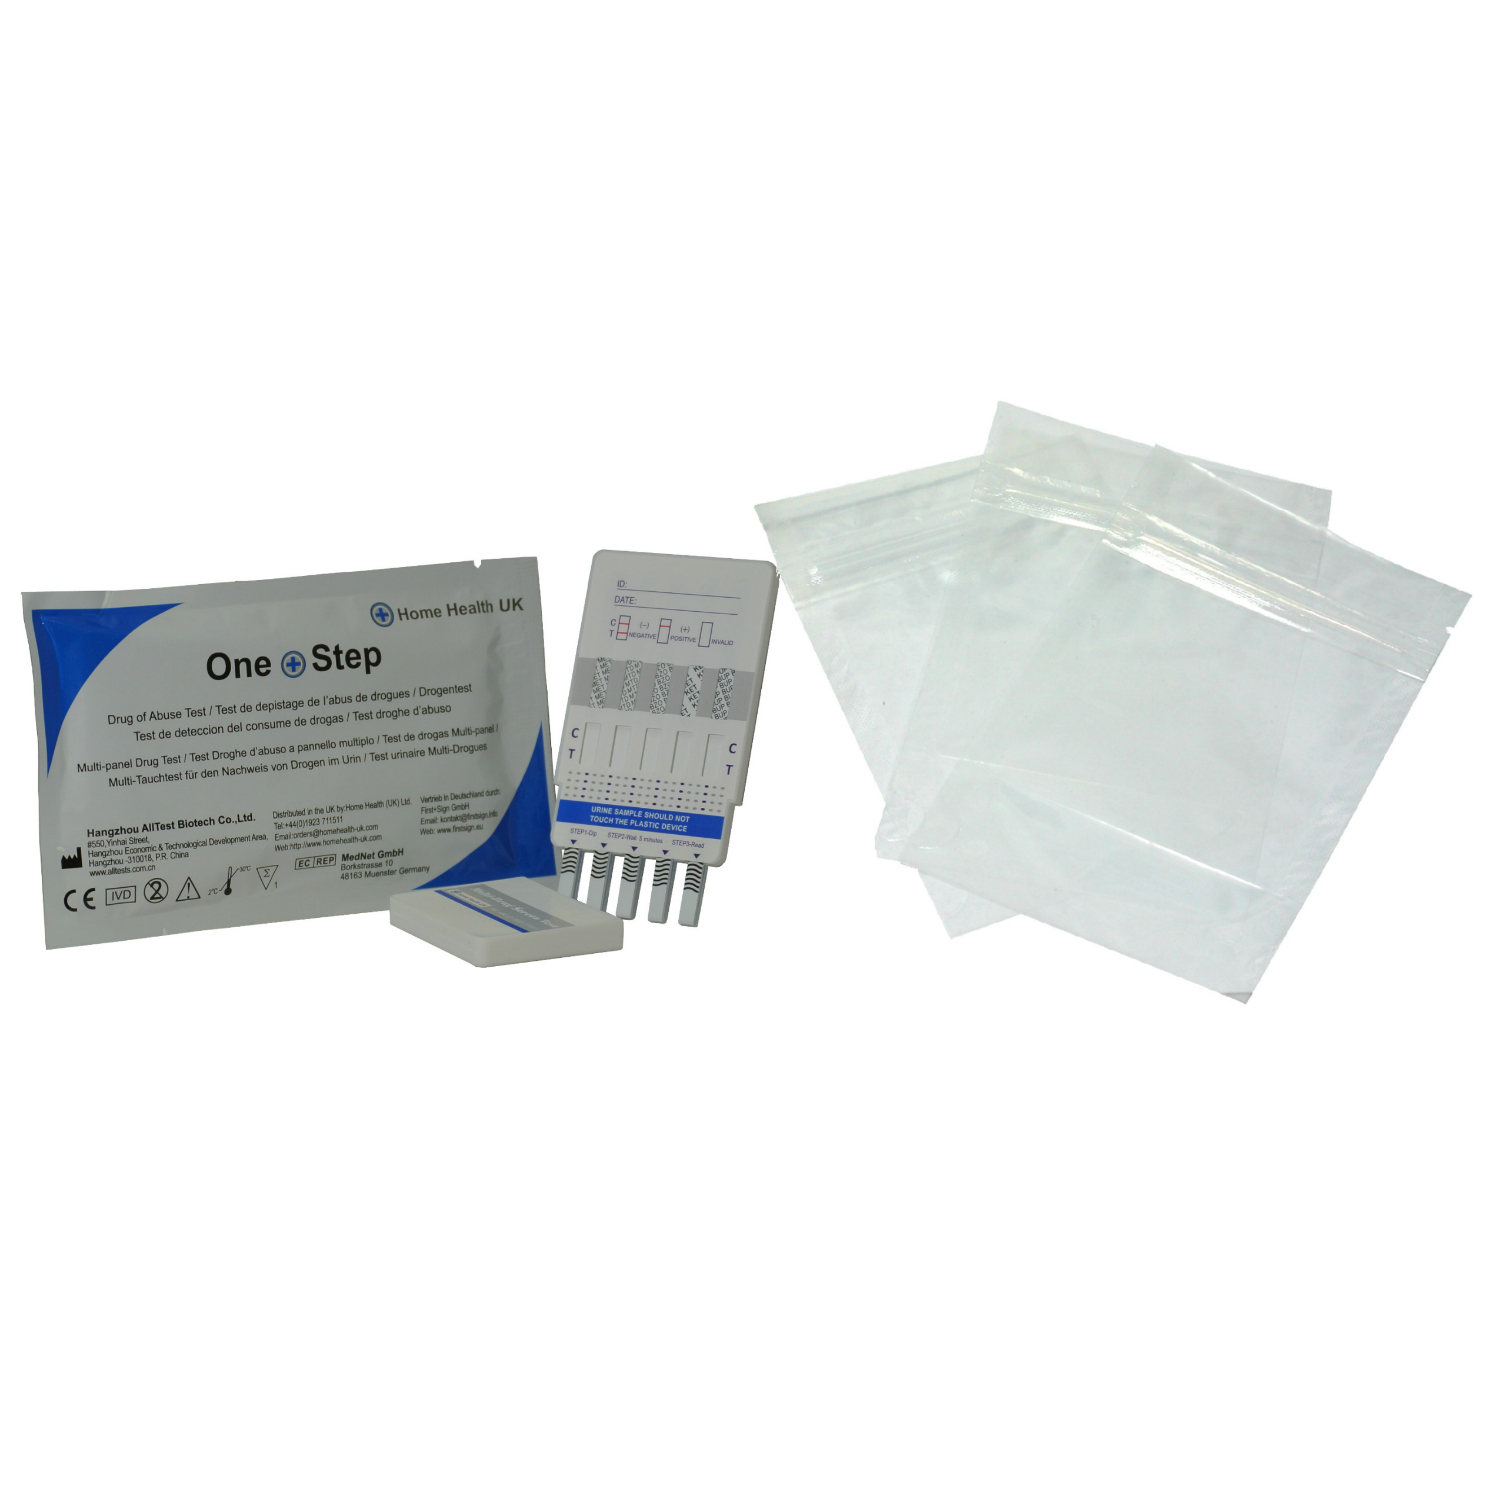 Drug Testing Kits | UK Supplier Quick & Discreet Delivery